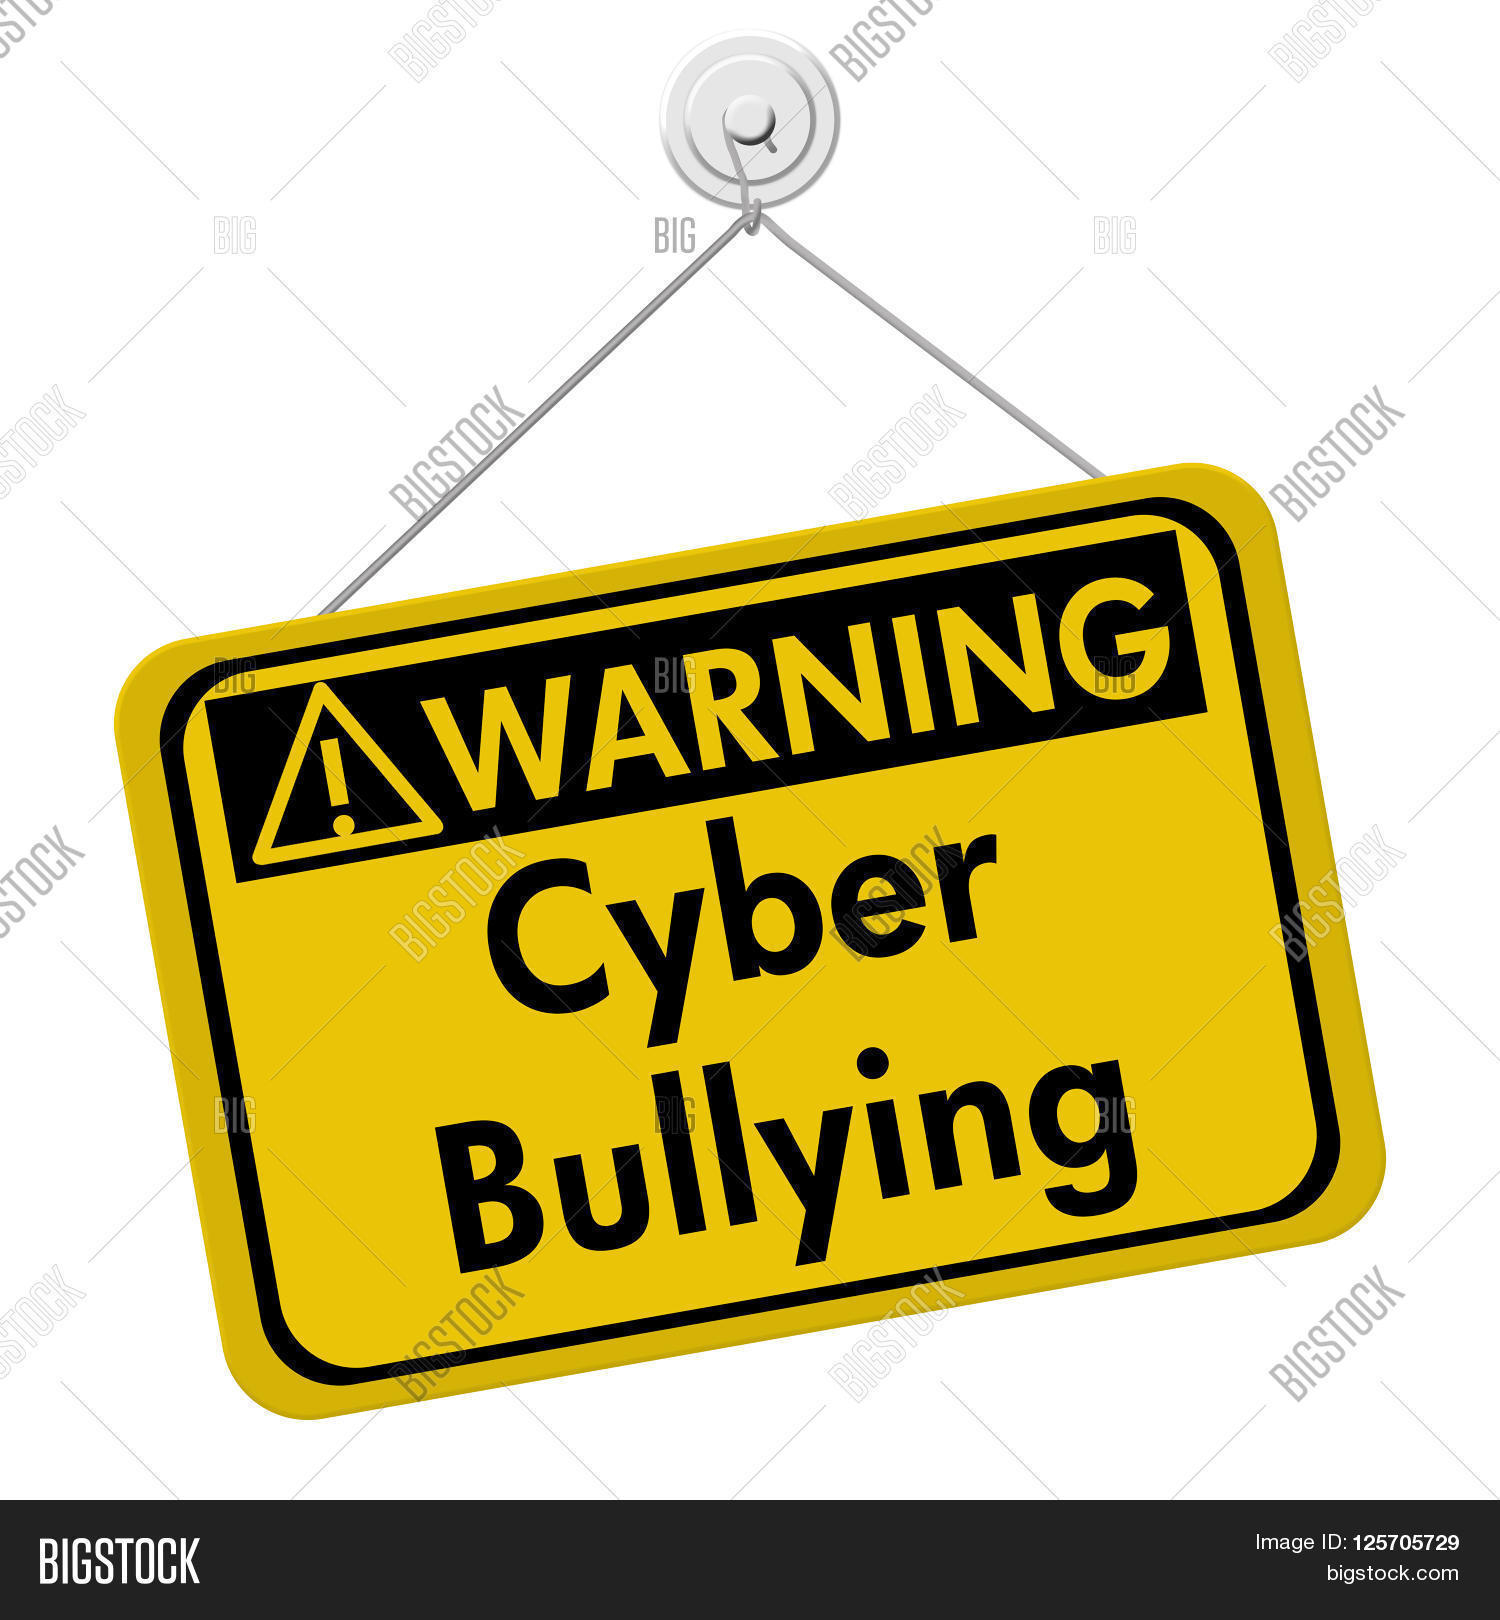 hight resolution of cyber bullying warning sign a yellow warning hanging sign with text cyber bullying isolated over white